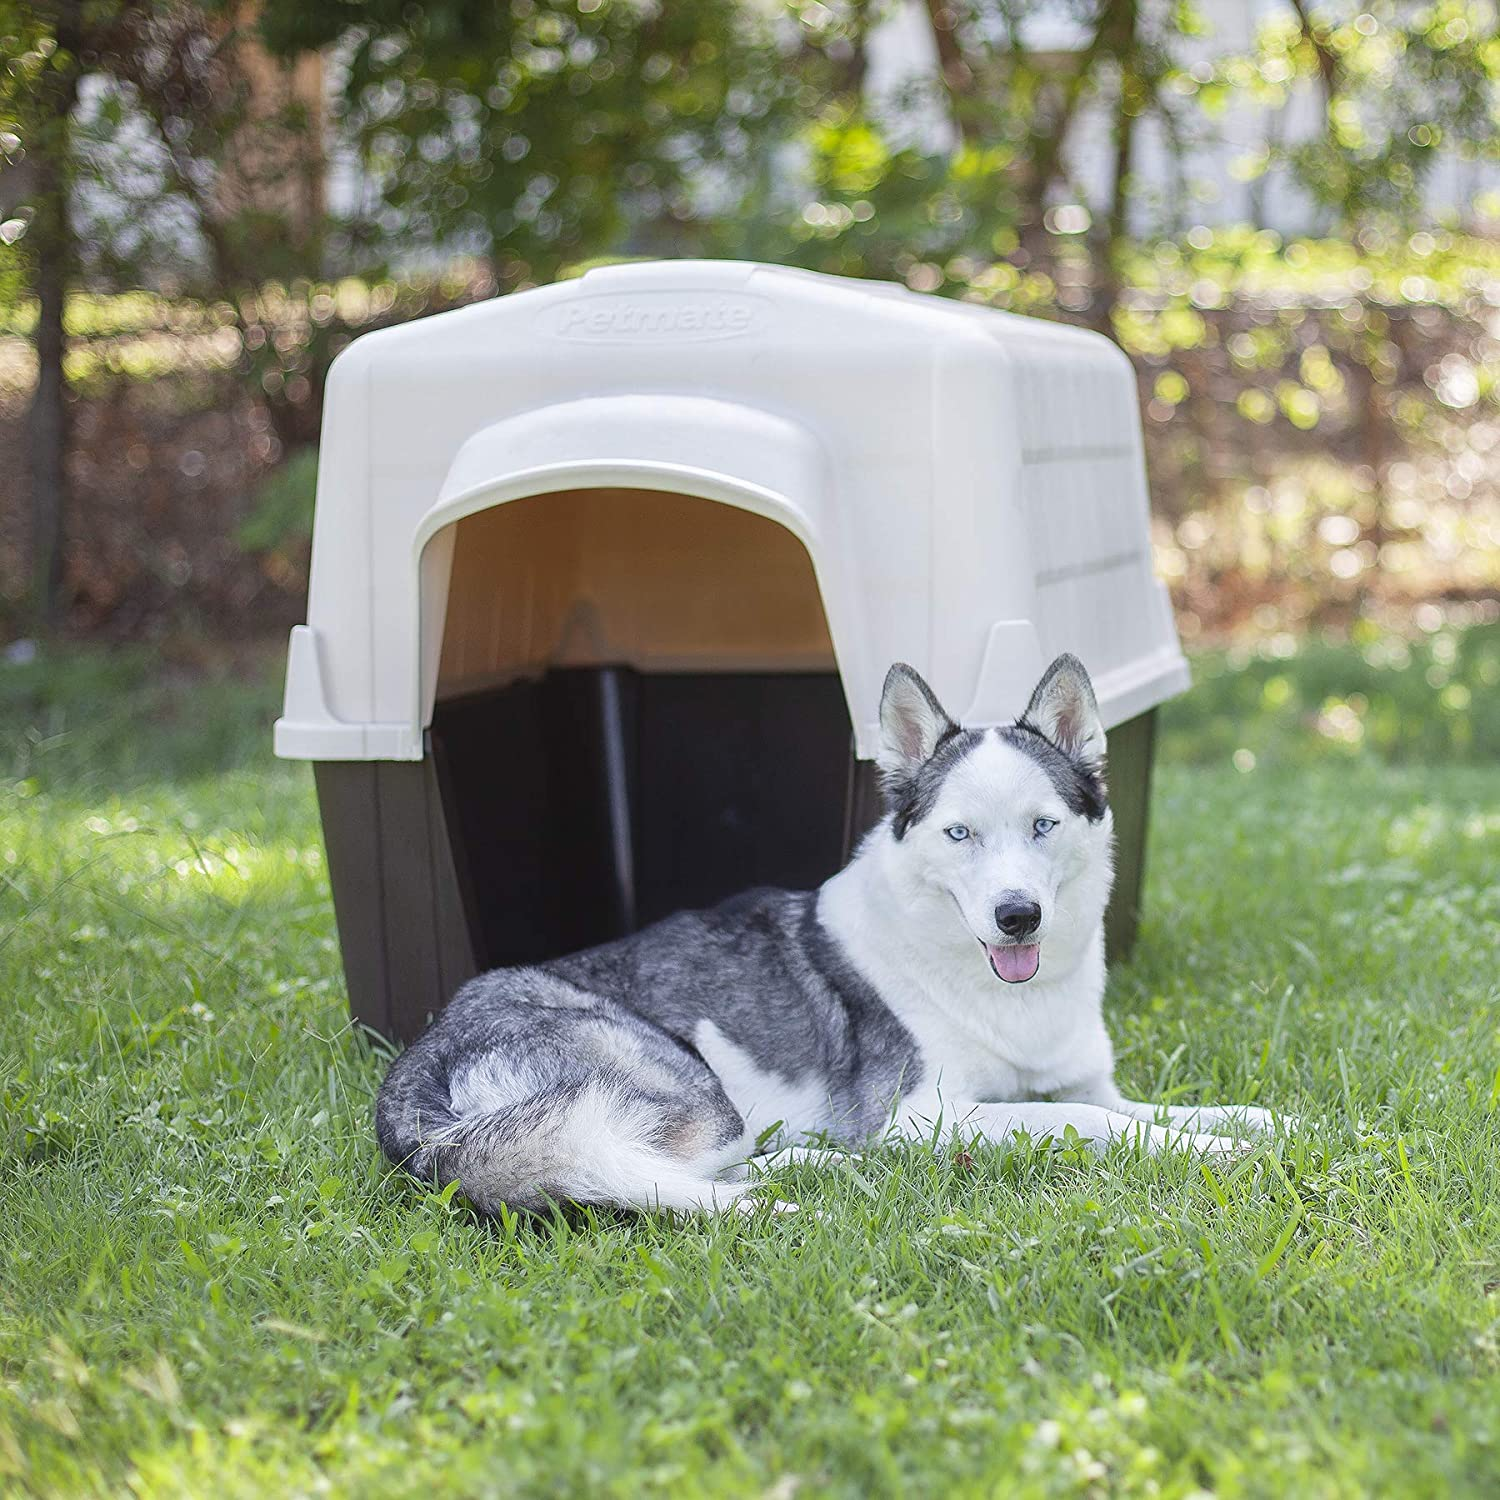 Petmate Aspen Pet Petbarn Dog House Snow and Rain Diverting Roof Raised Floor No-Tool Assembly 4 Sizes Available, Multi, UP to 15 LBS : Dog Houses : Pet Supplies